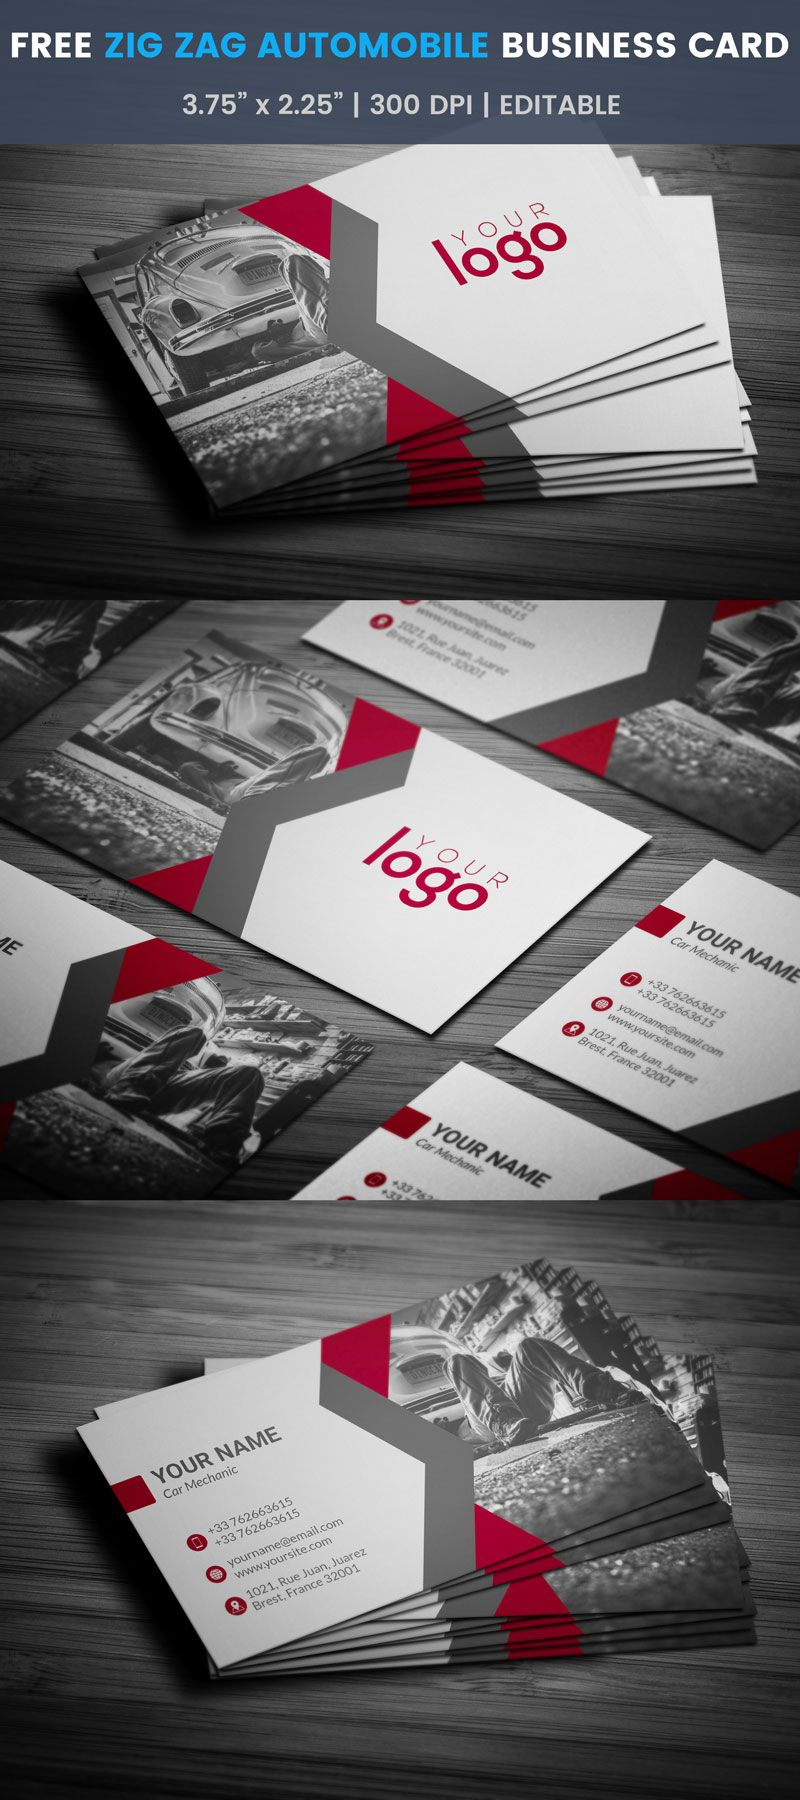 Zigzag automobile business card full preview free business card zigzag automobile business card full preview colourmoves